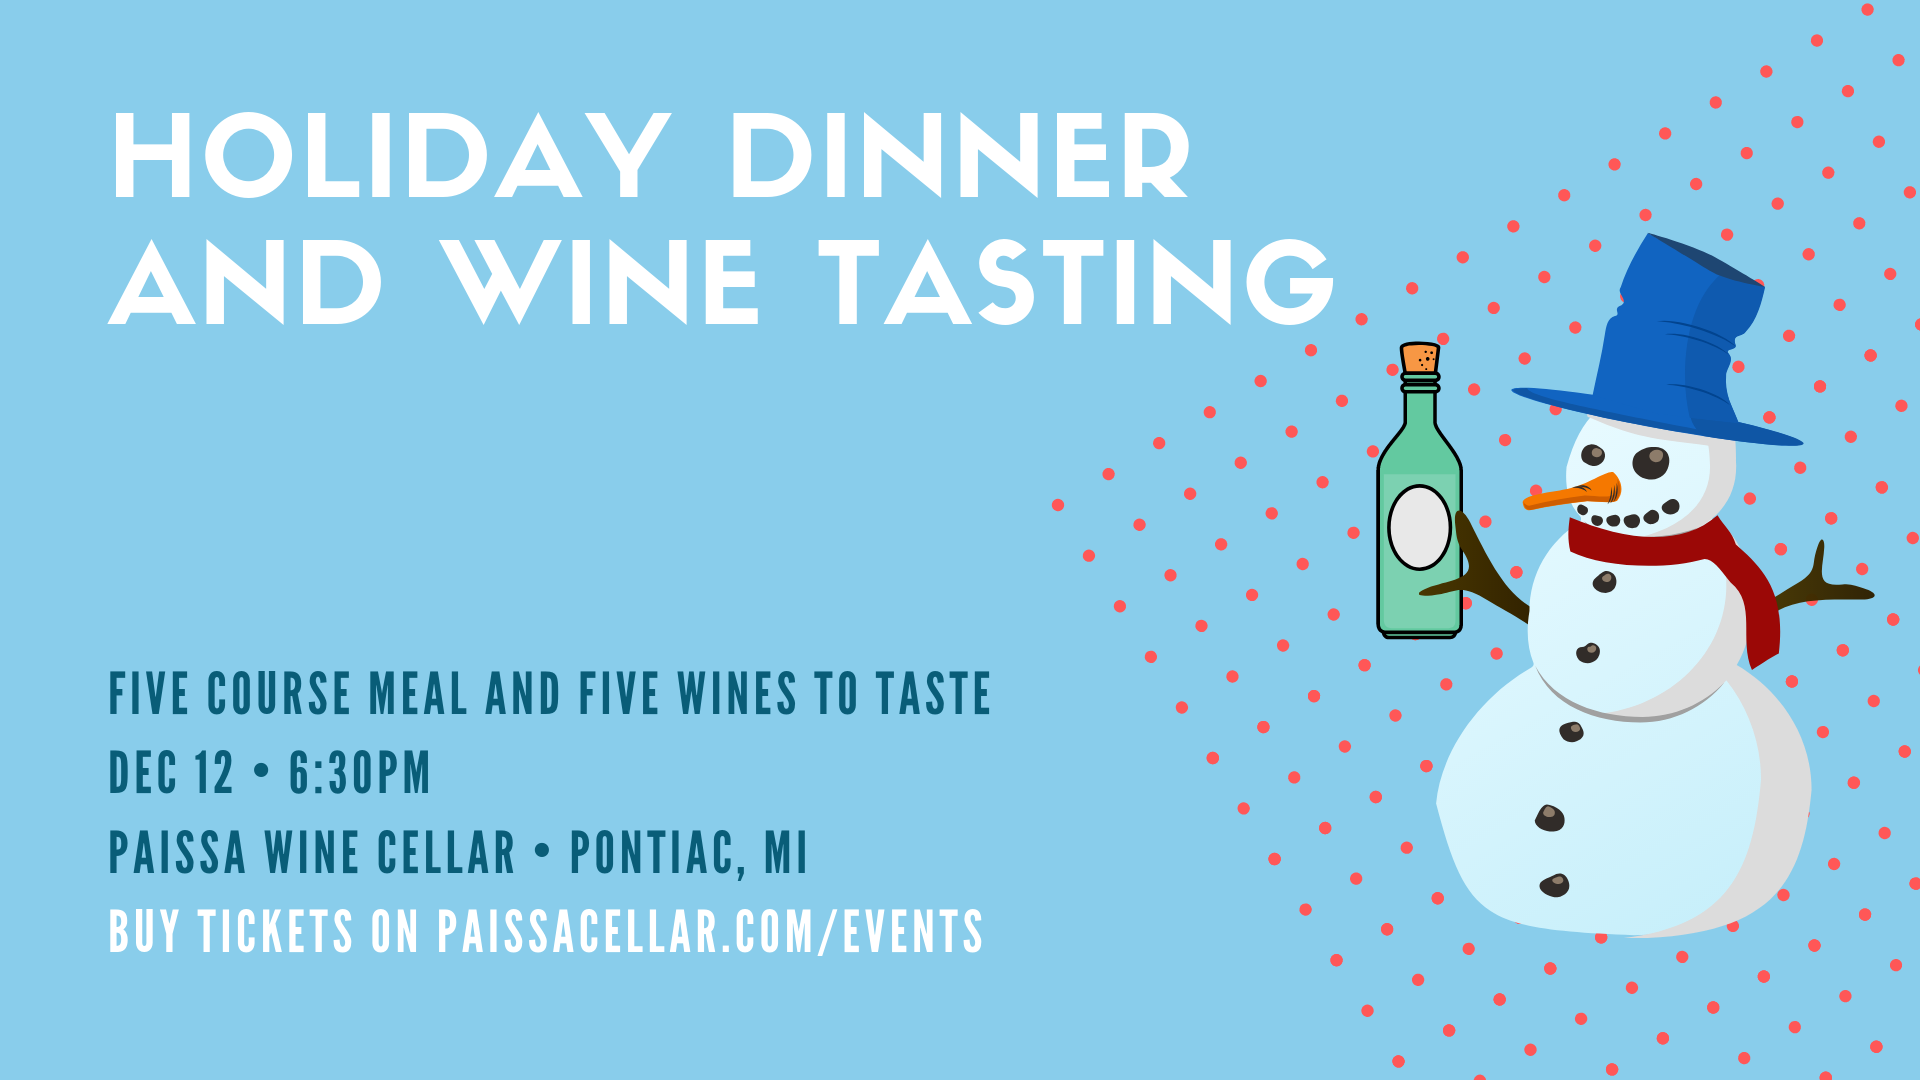 Holiday Dinner and Tasting